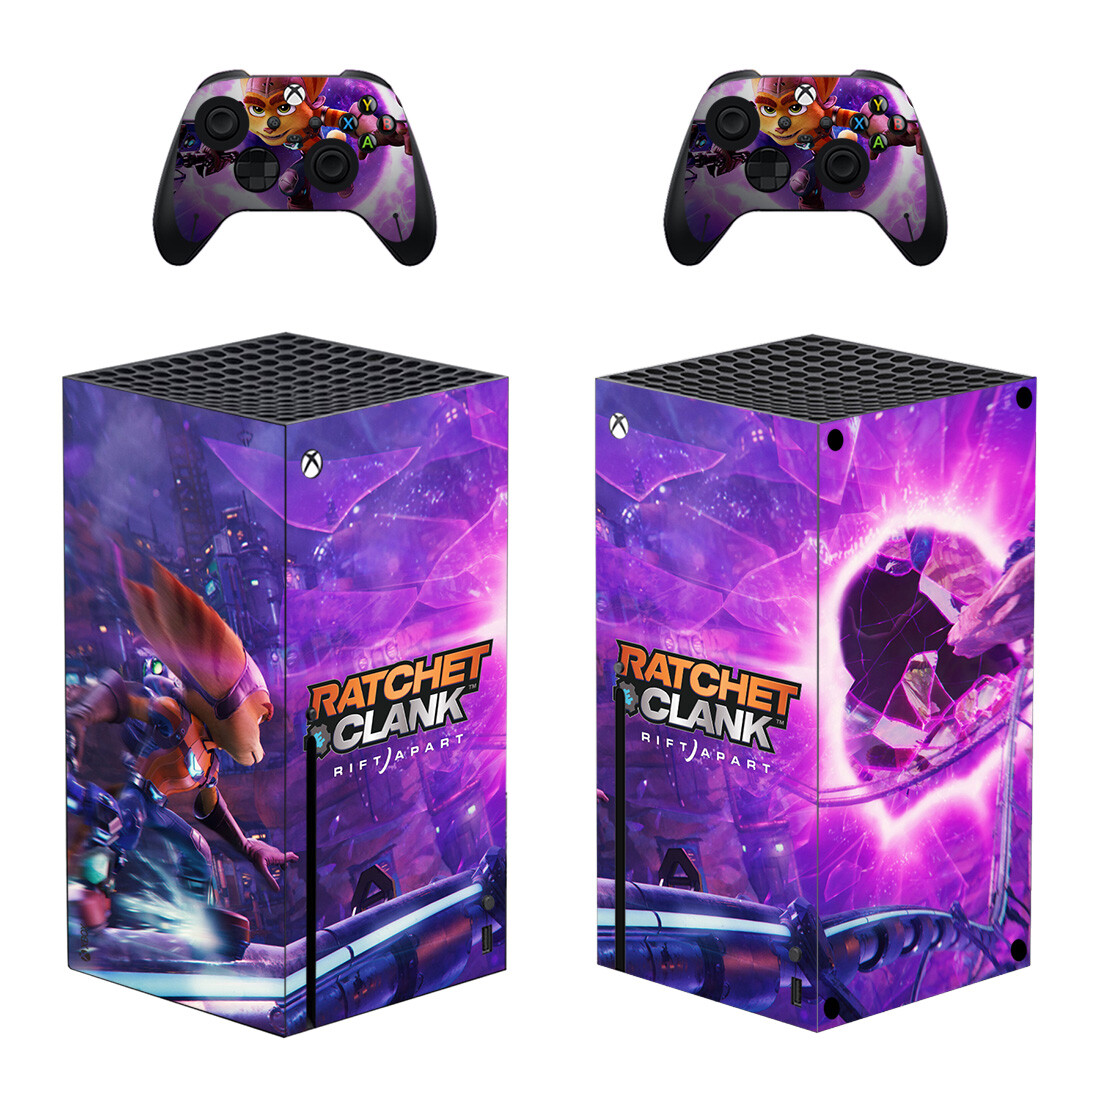 Ratchet And Clank Skin Sticker For Xbox Series X And Controllers